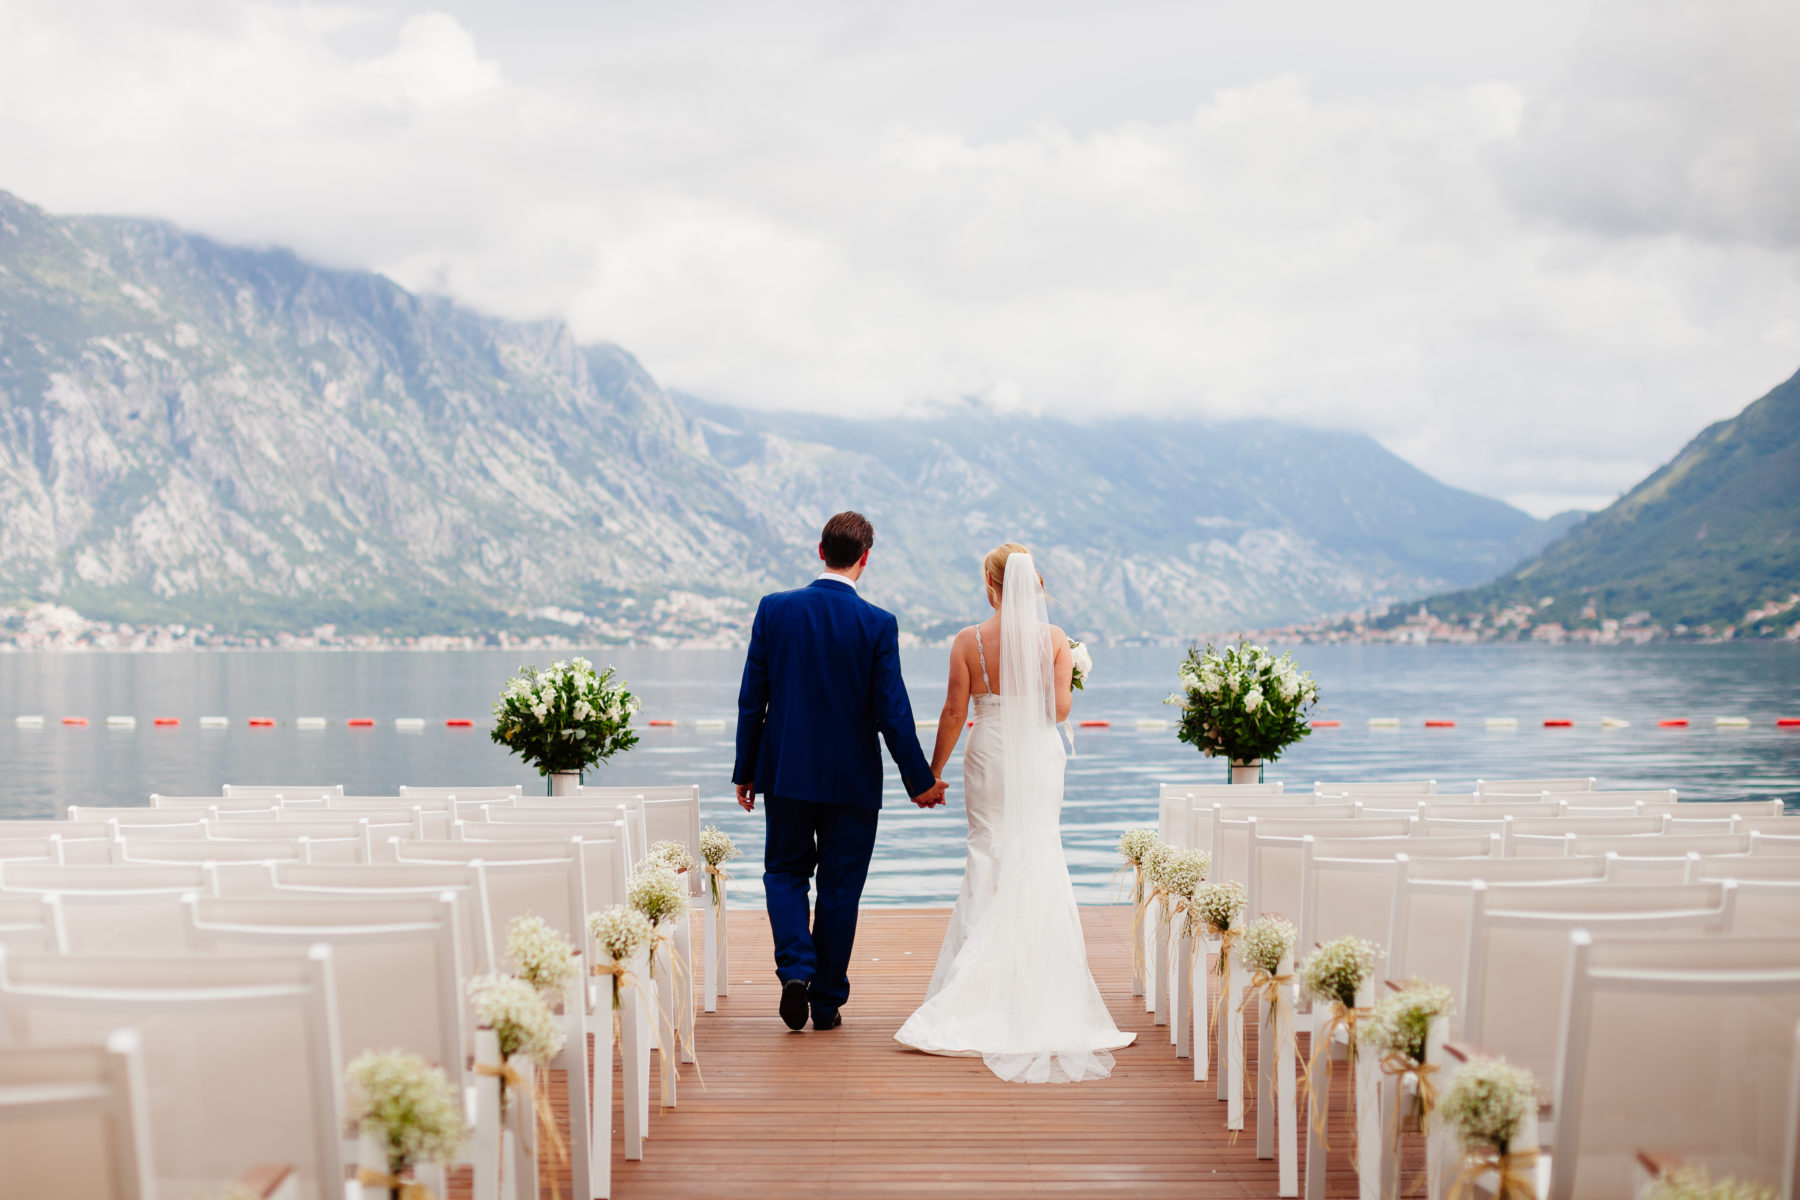 Six Tips For Planning A Destination Wedding